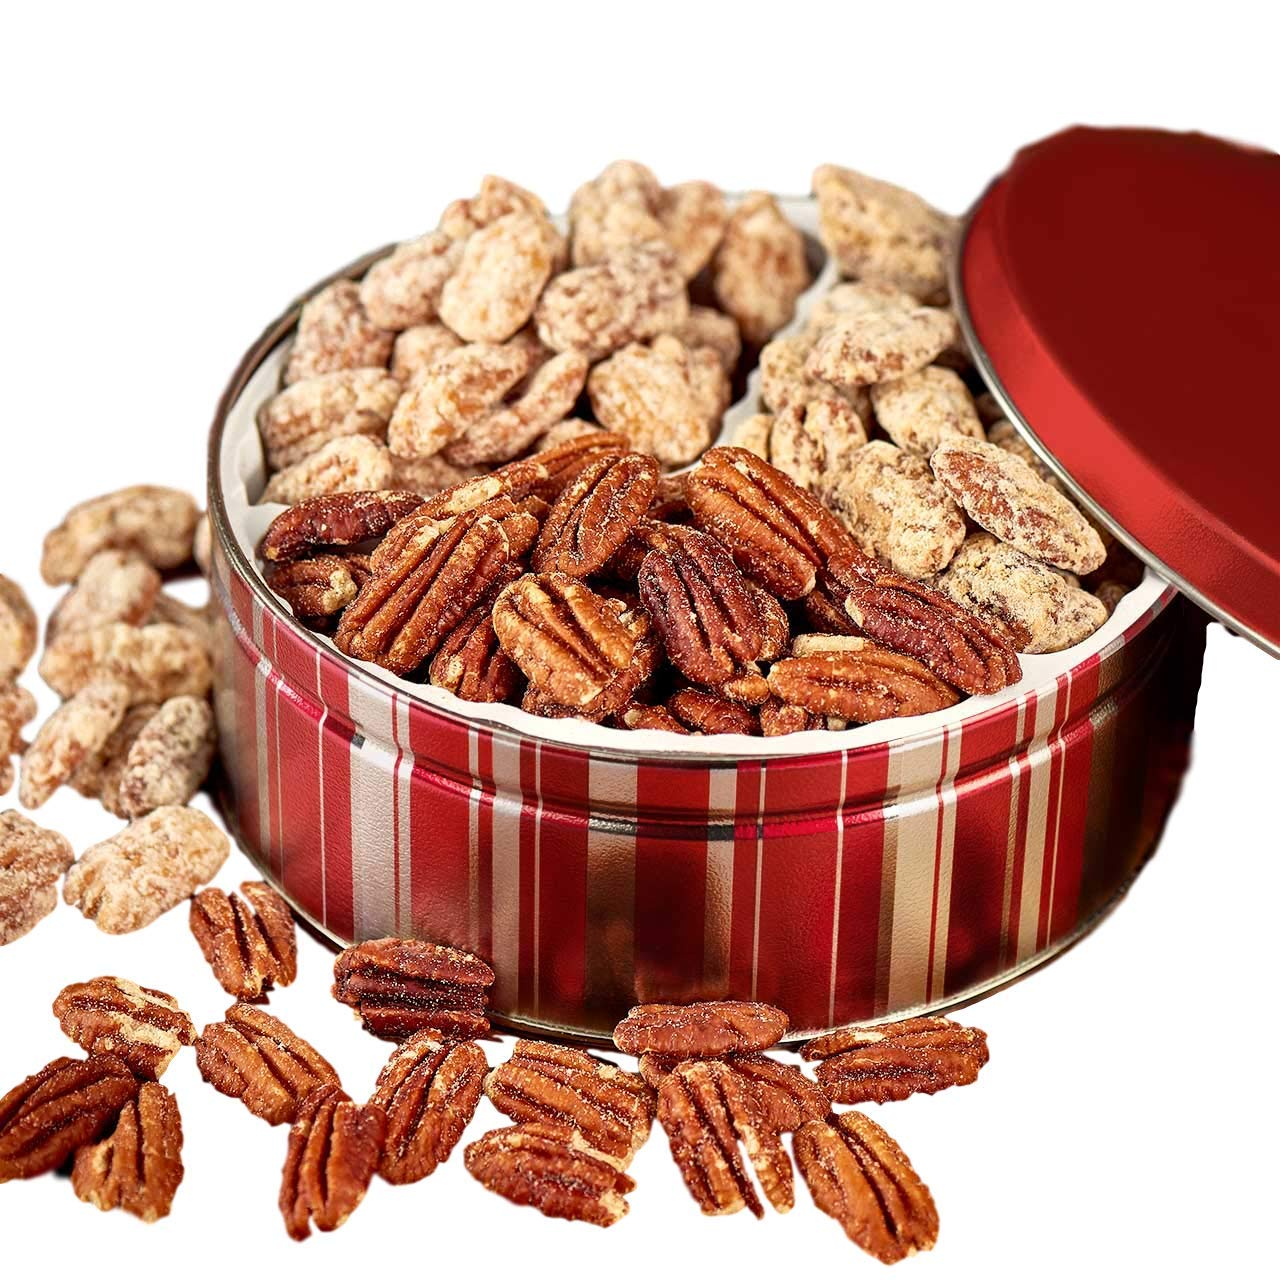 Savannah Candy Kitchen | Sweet & Salty Nut Tin | Praline, Cinnamon, and Roasted & Salted Pecan Gift Tin - 18oz by Savannah's Candy Kitchen